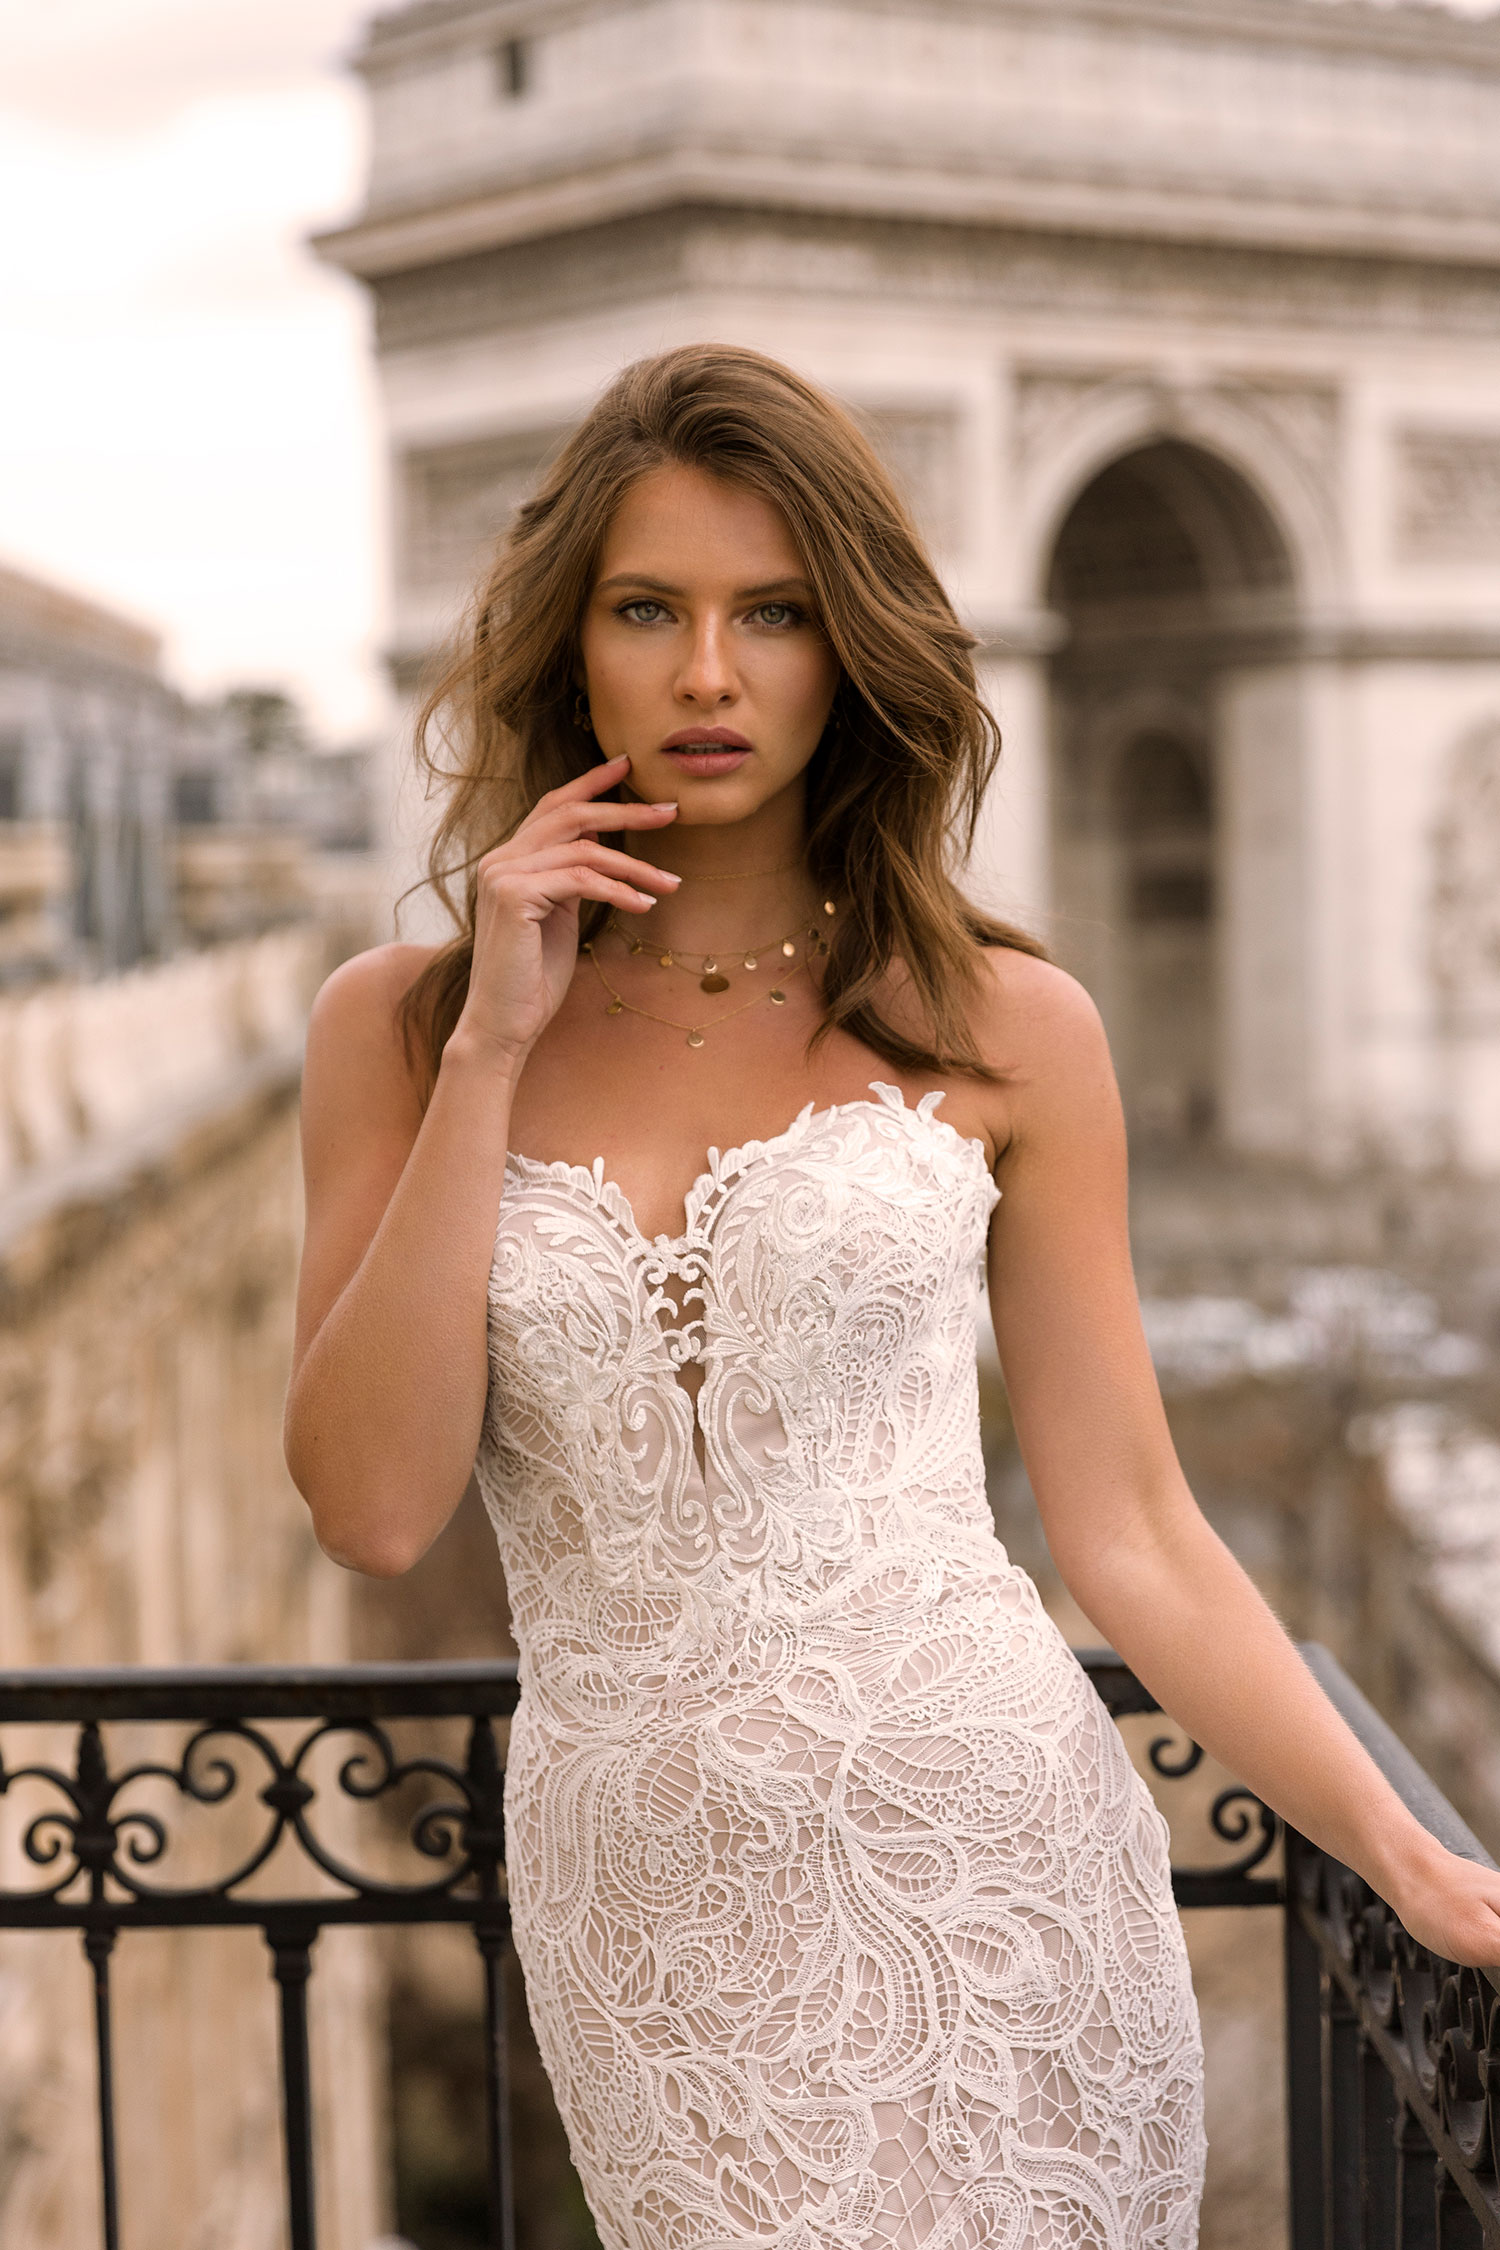 Ivy Ml7419 Full Heavy Lace Gown With Sweetheart Neckline Zip Up Back And Detachable Off Shoulder Lace Straps Wedding Dress Madi Lane Bridal5